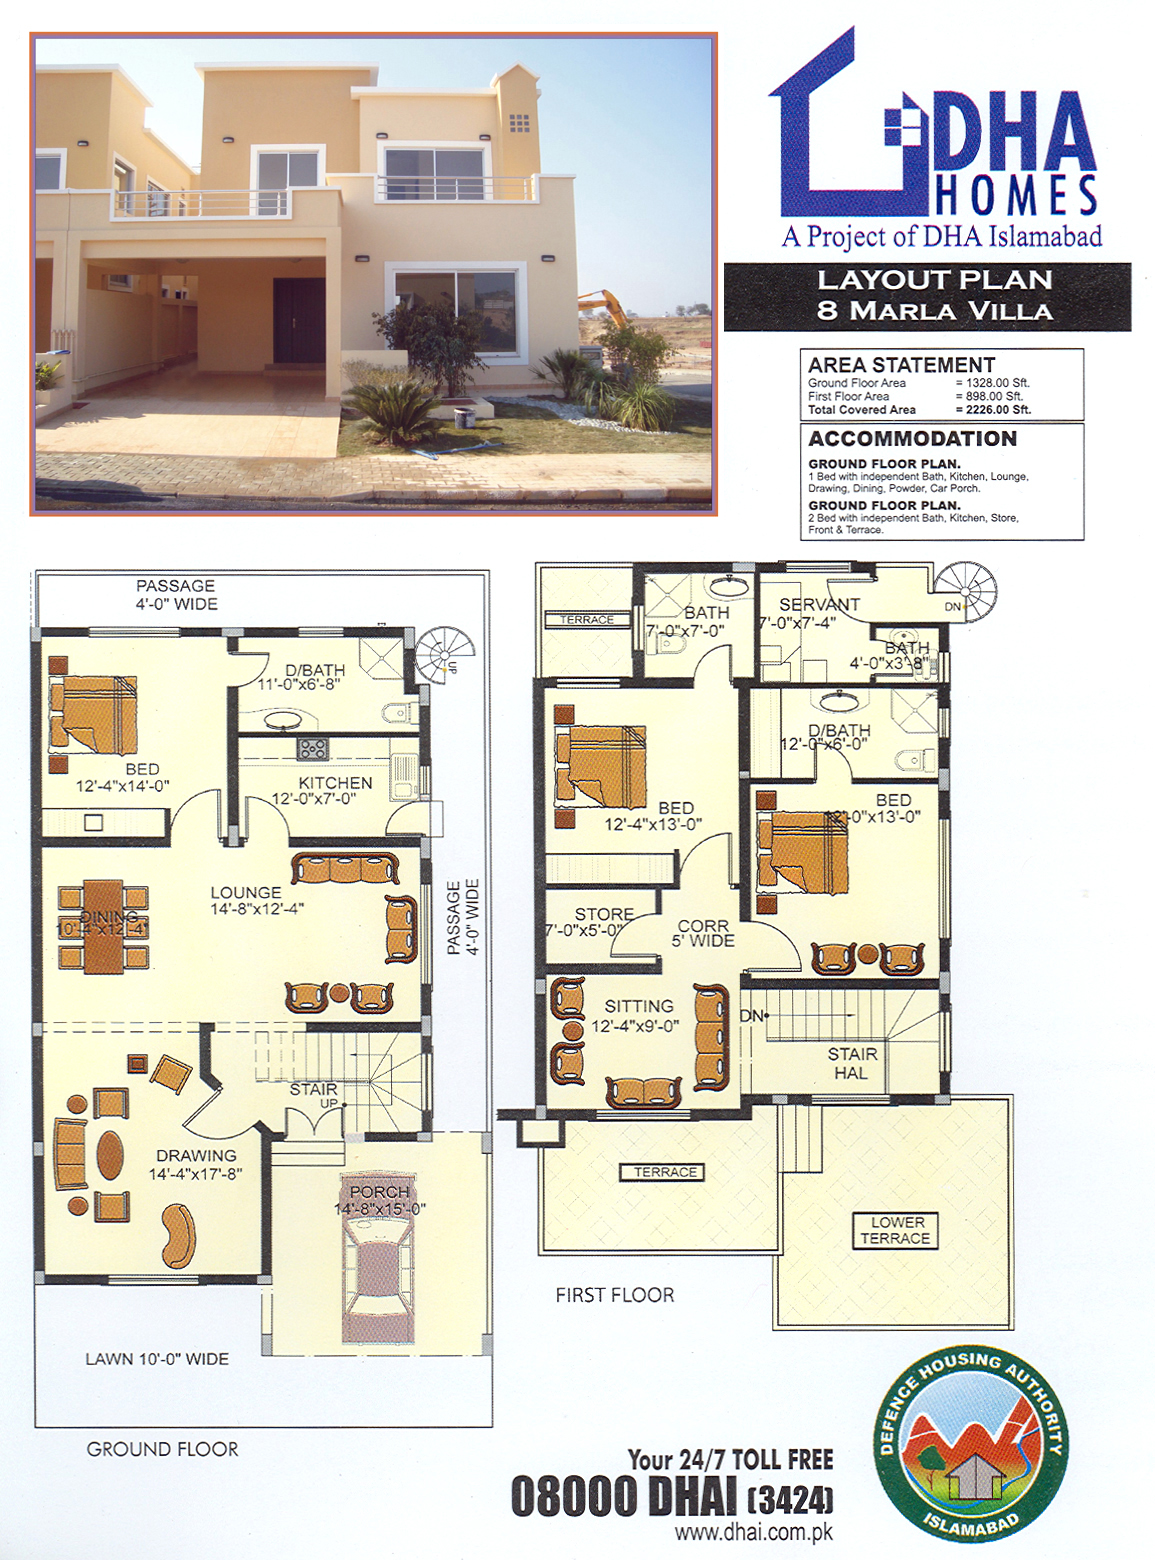 Dha homes islamabad location layout floor plan and prices Construction cost of 5 marla house